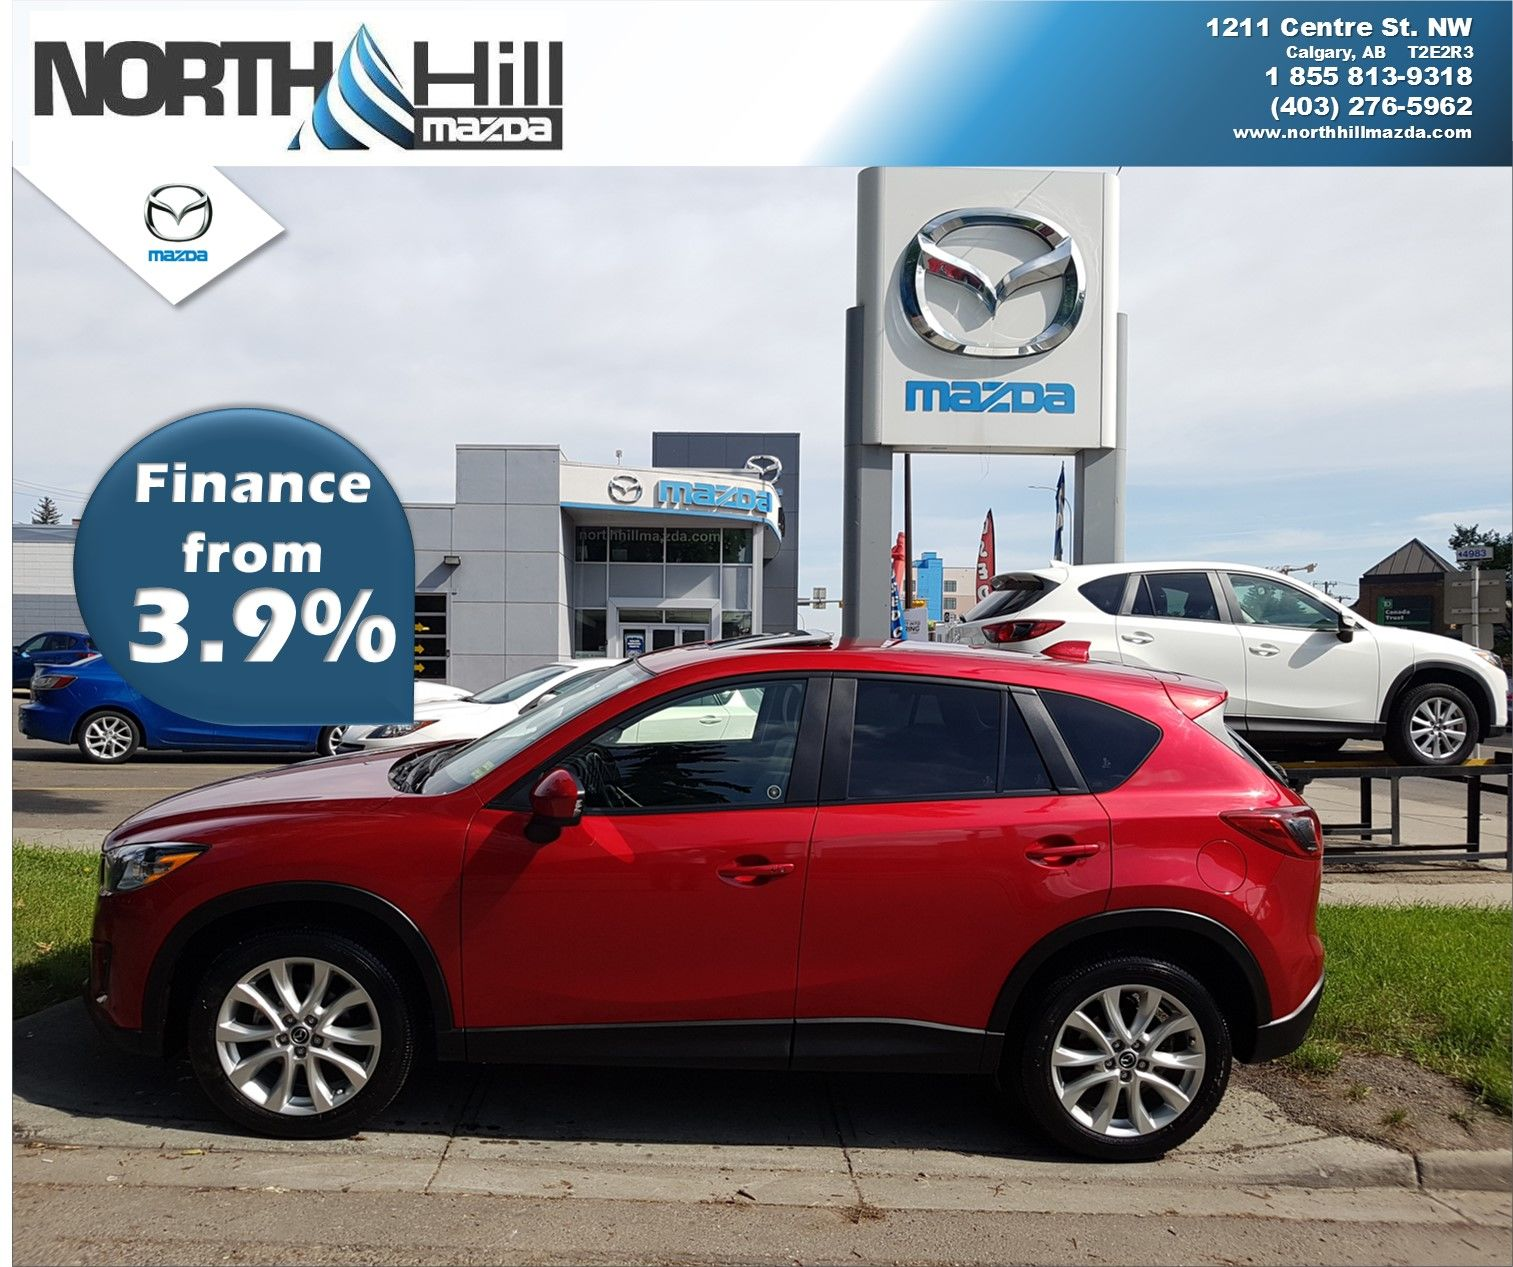 2014 Mazda Cx 5 Gt Awd At For Sale In Calgary North Hill Mazda